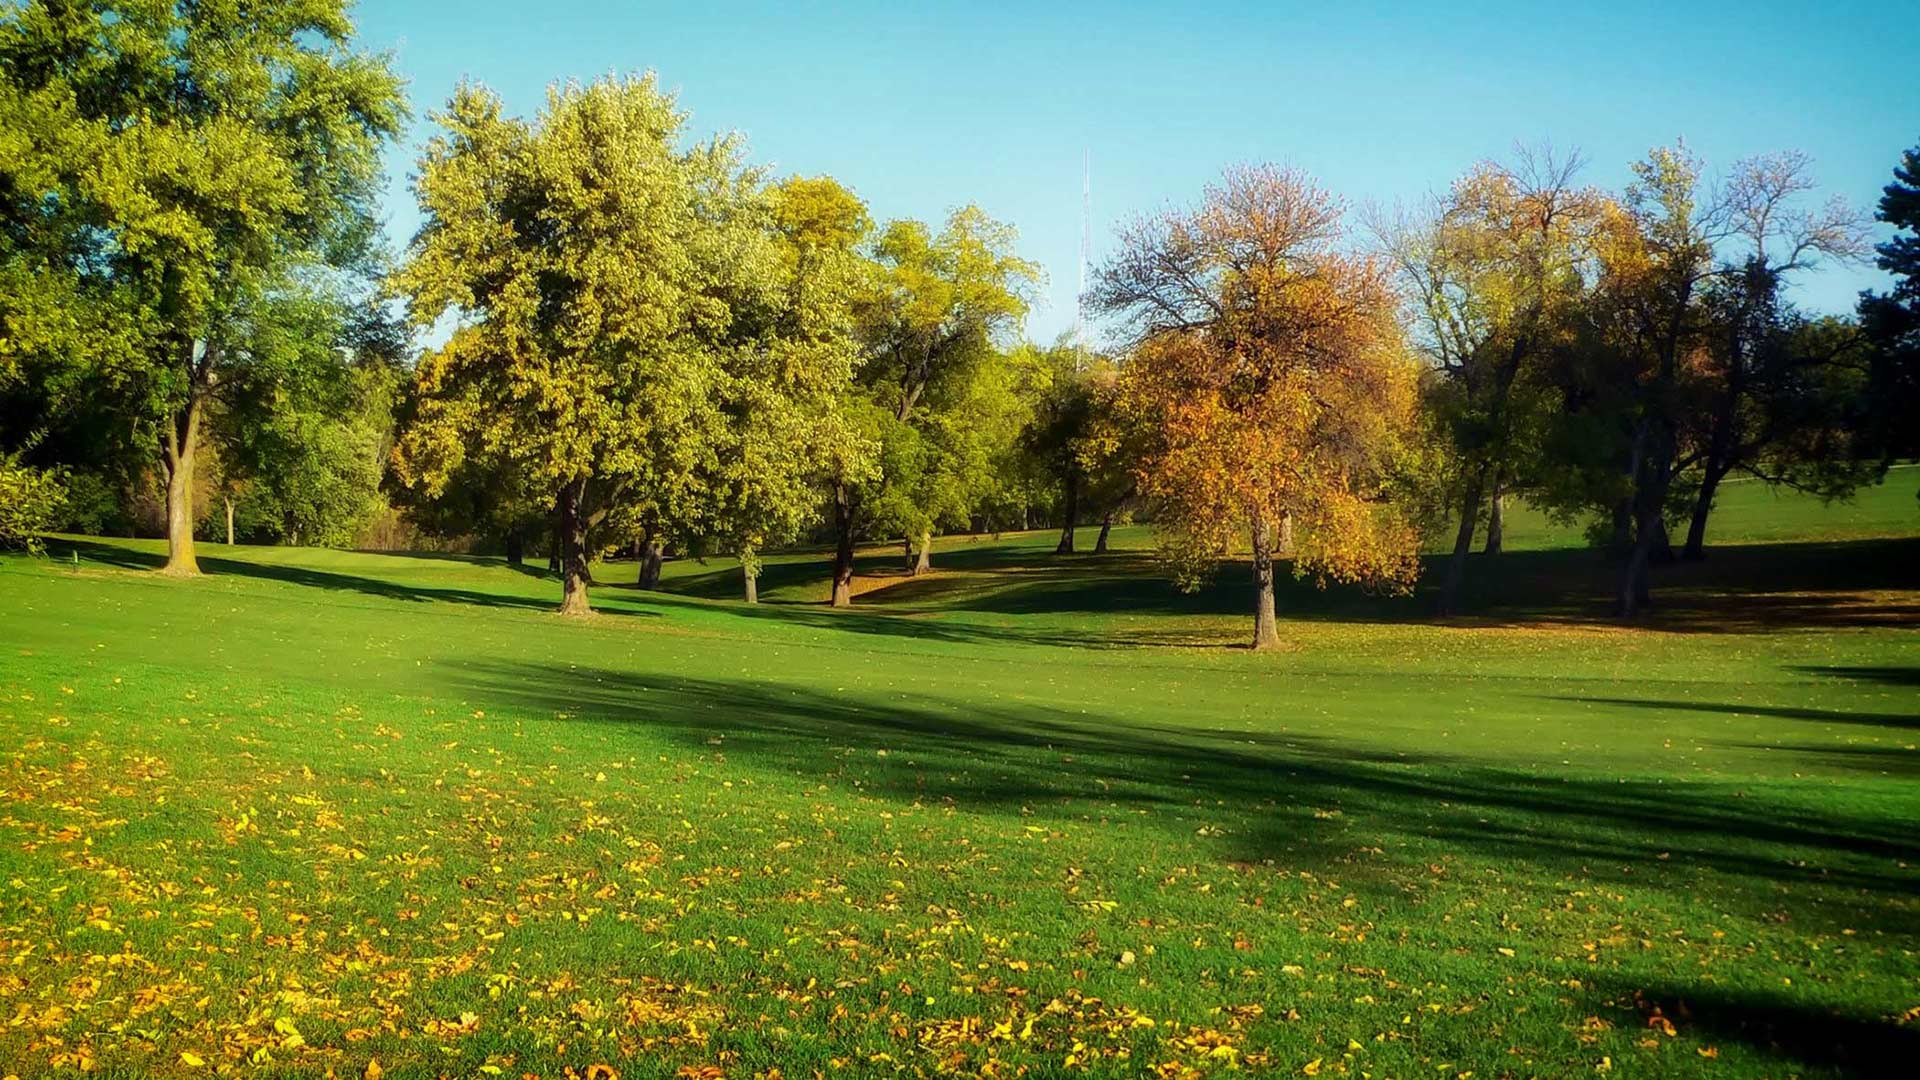 Mohab Ibrahim wondered if the green of parks could be why they seem to be effective at soothing headaches.